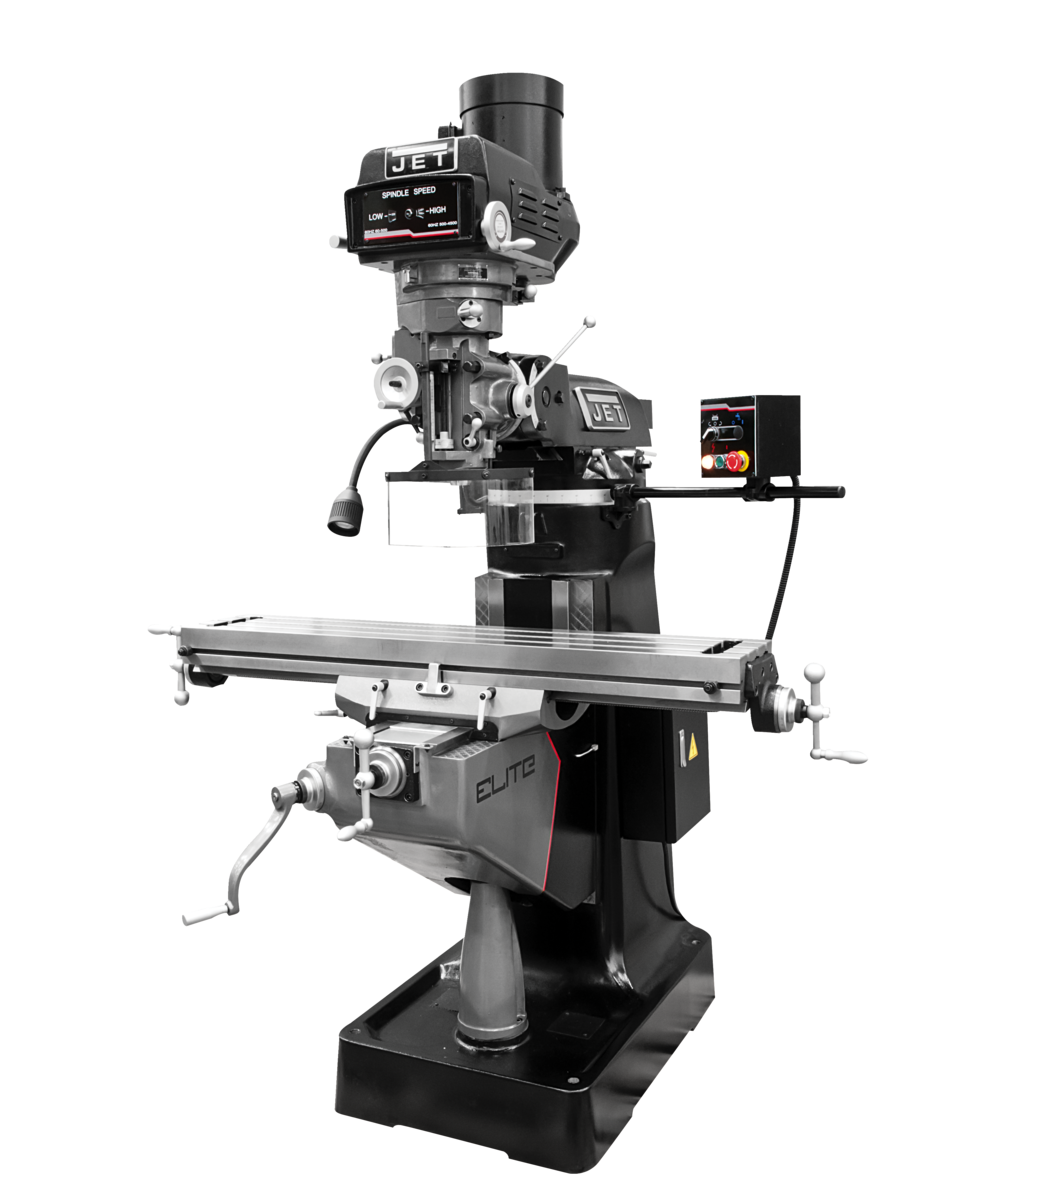 ETM-949 Mill with 3-Axis Newall DP700 (Knee) DRO